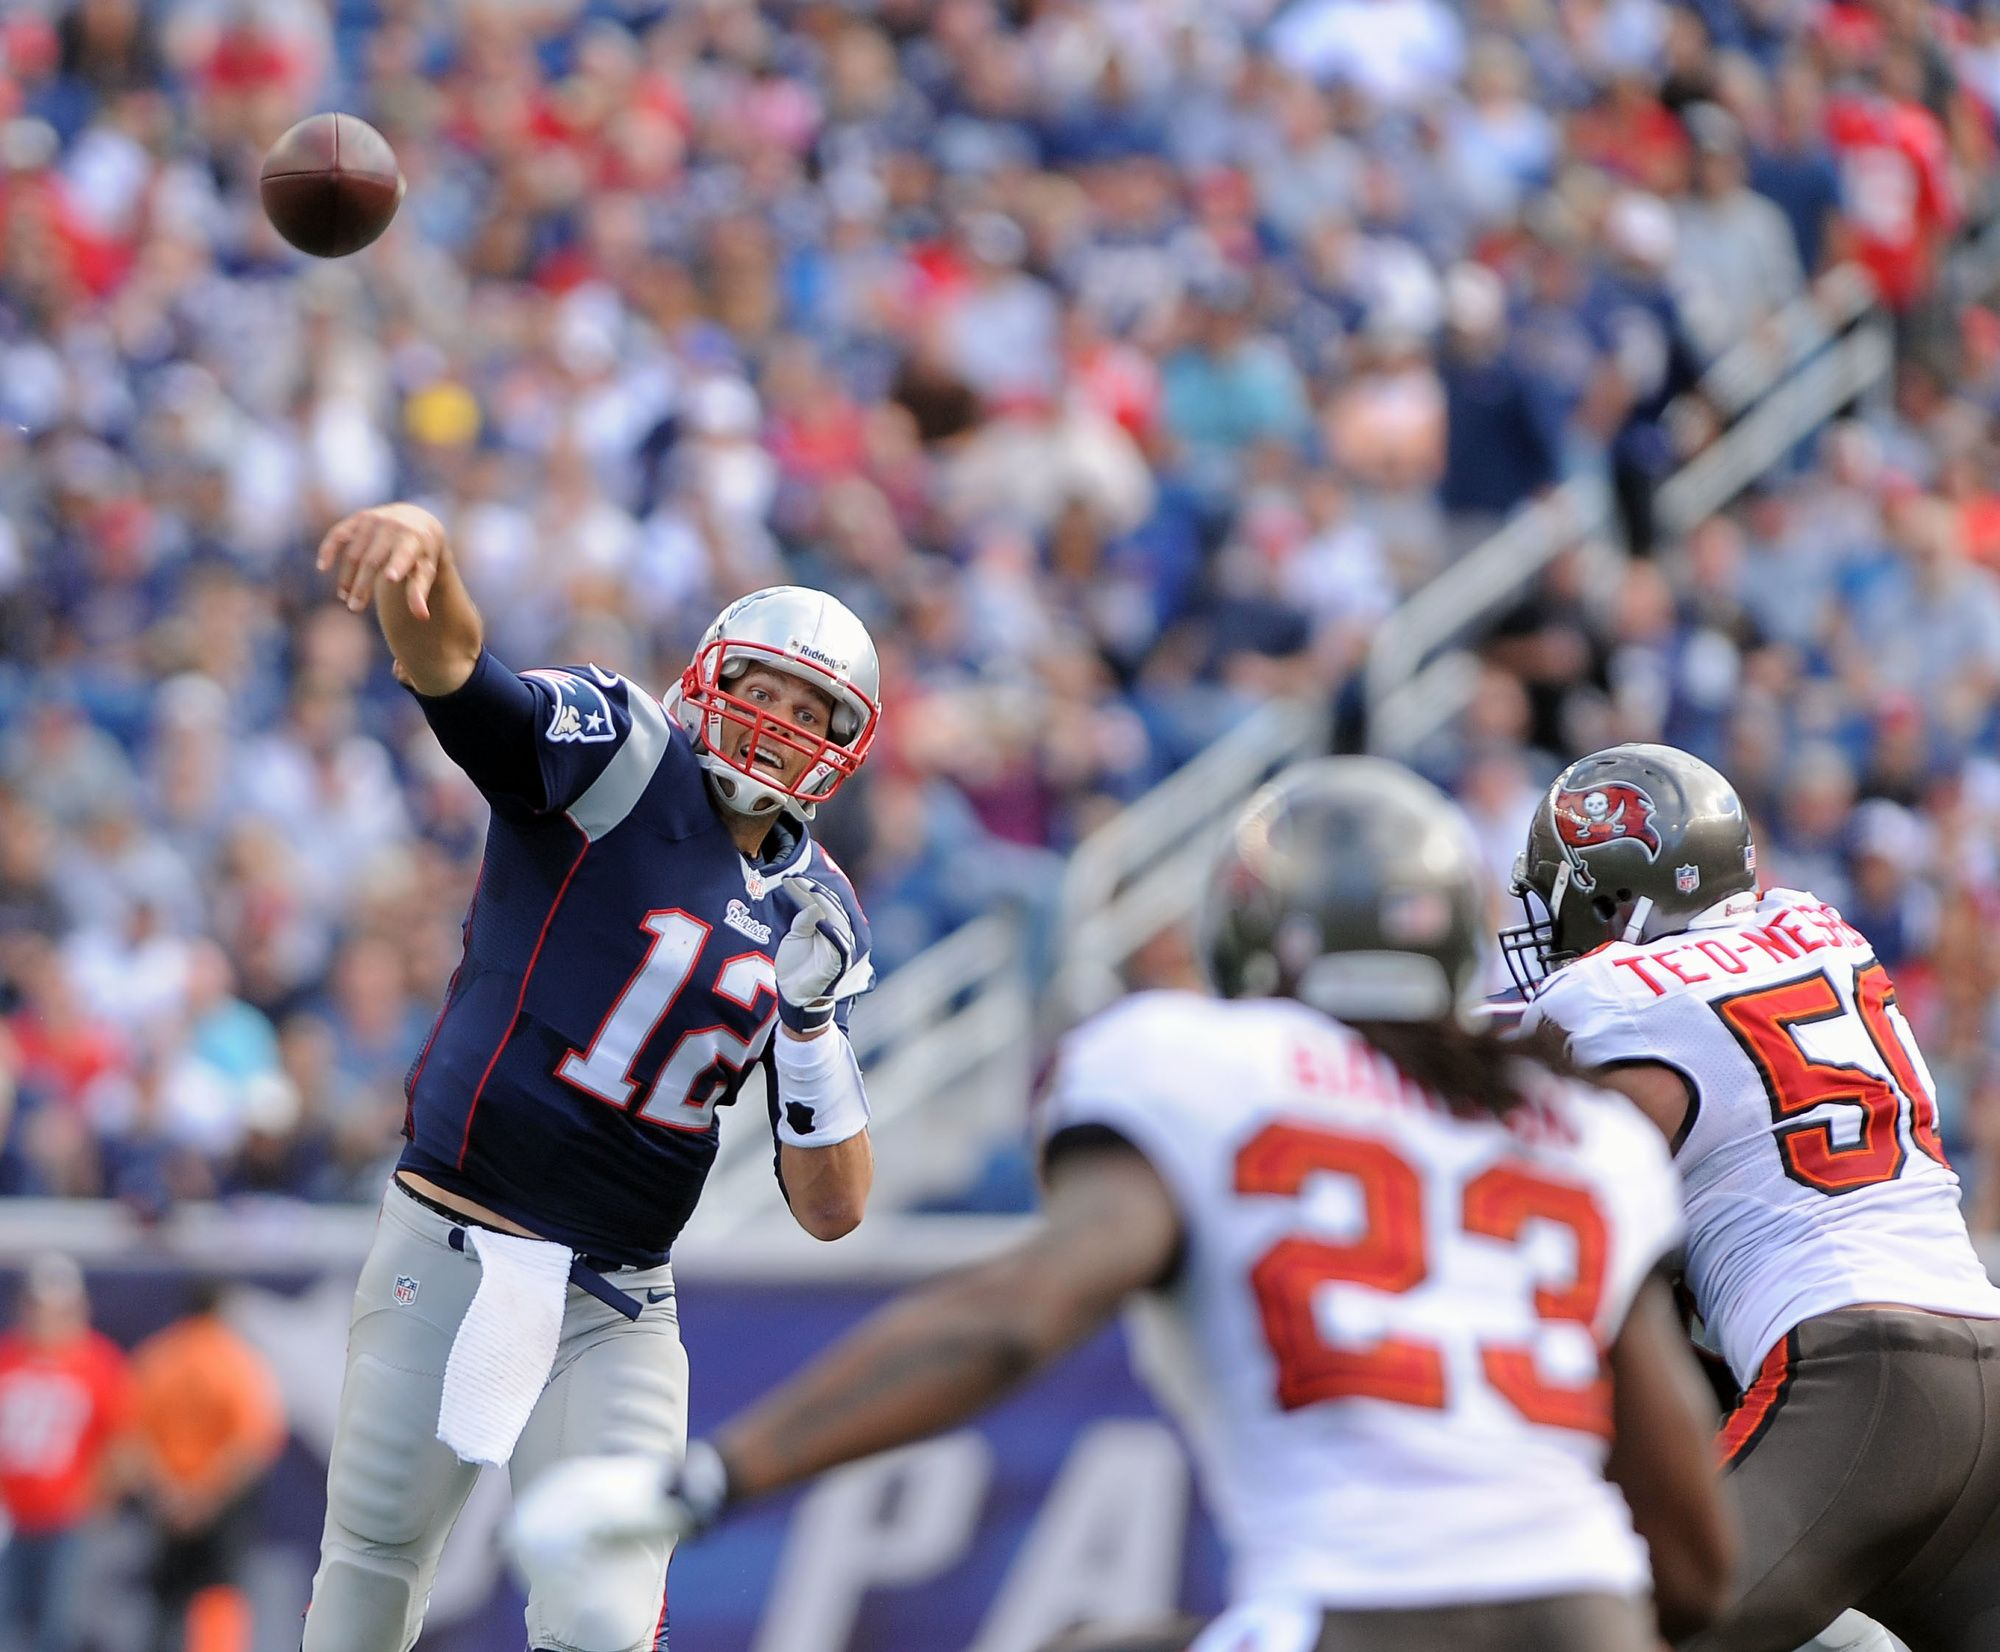 New England Patriots Quarterback Tom Brady Throws A Pass During A Game Against The Tampa Bay Buccaneers Sept New England Patriots New England Football Helmets